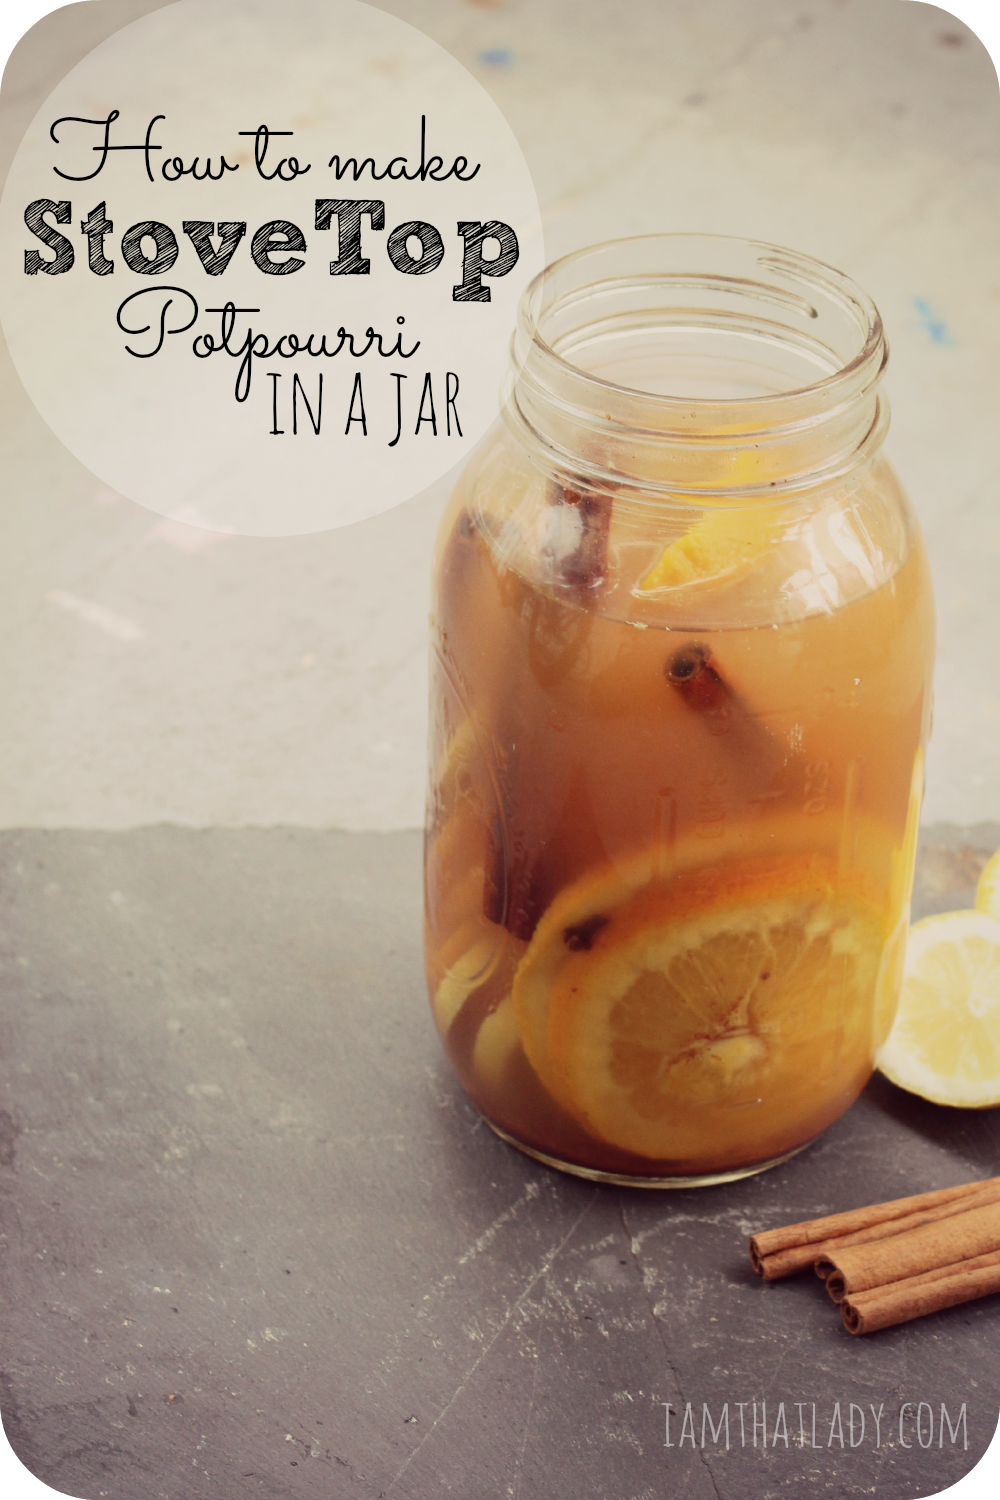 Want to make your house smell amazing! Here is a super easy stovetop potpourri recipe.  You can whip it up in just 10 minutes plus is makes a perfect gift!